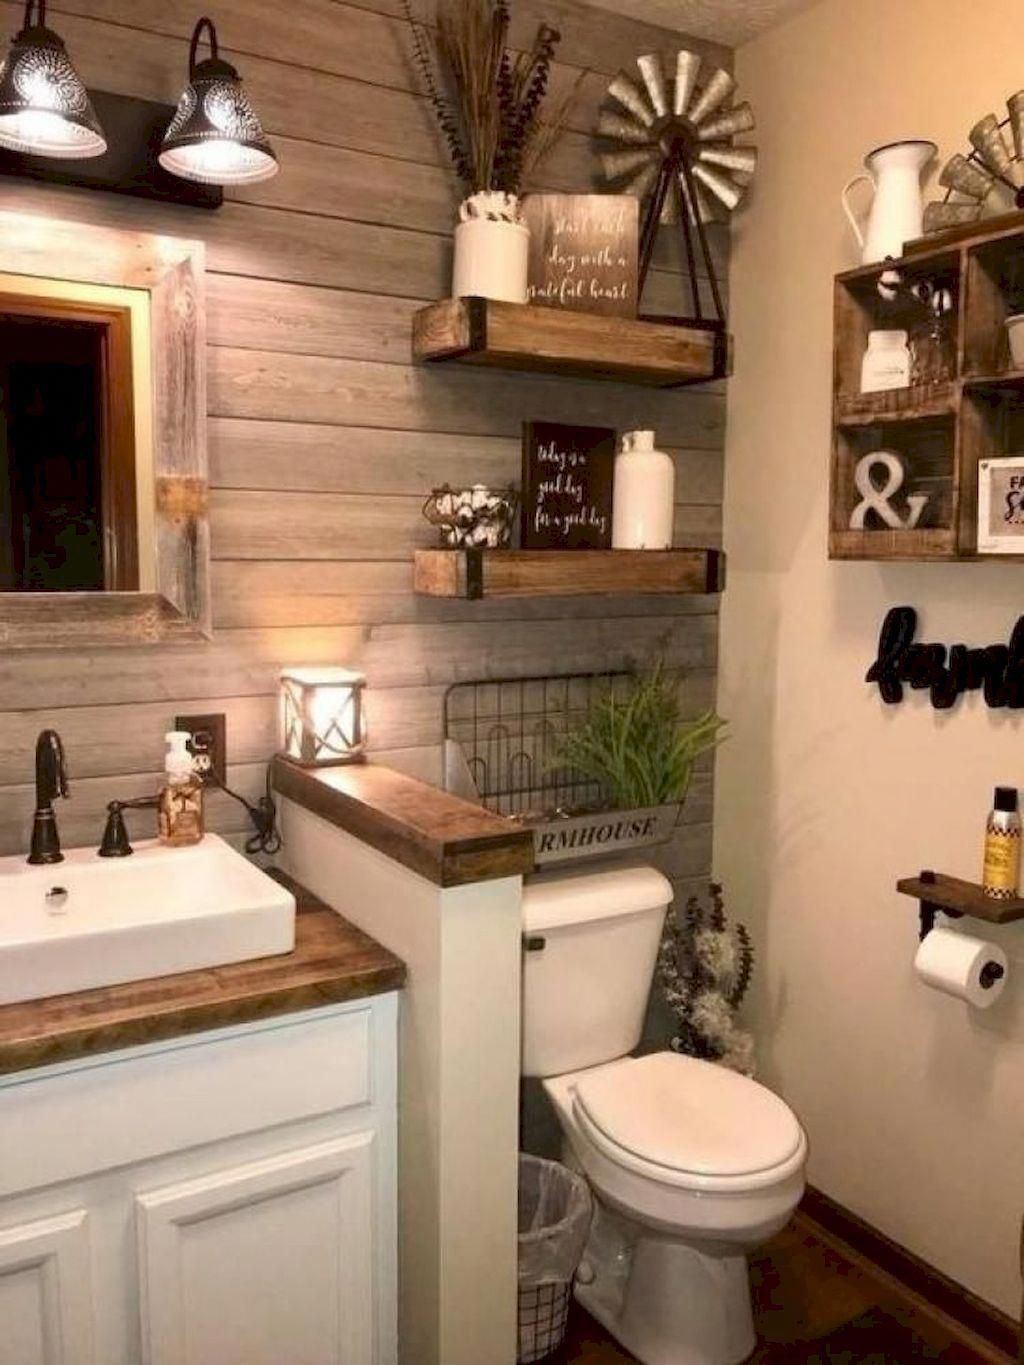 This approach seems to be excellent Bathroom Reno Ideas in ...